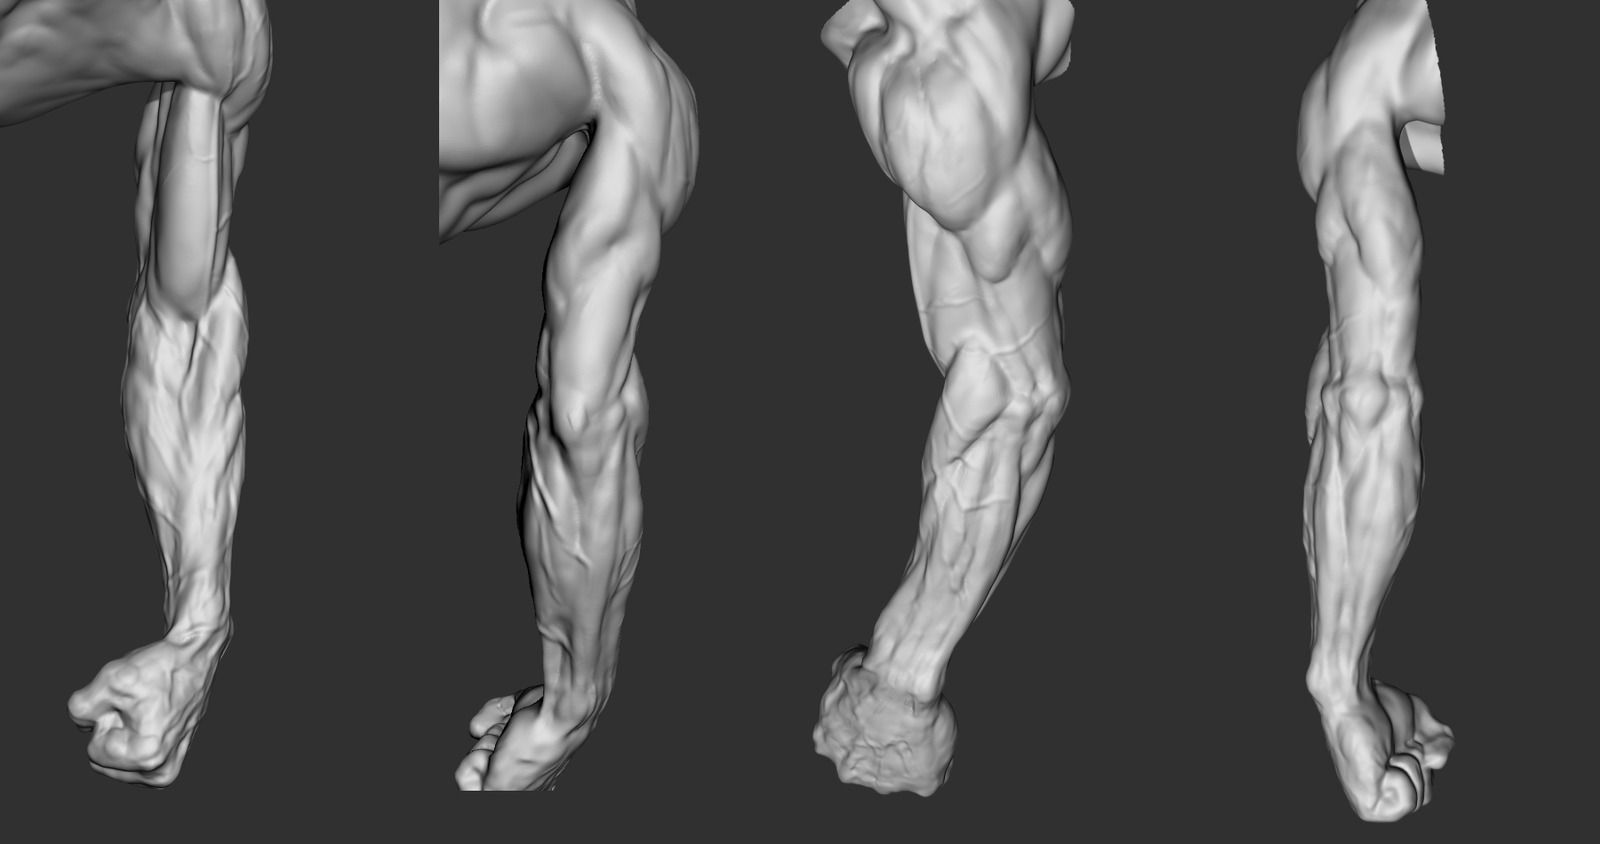 anatomy ref | Anatomy Reference | Pinterest | Anatomy, Arms and ...